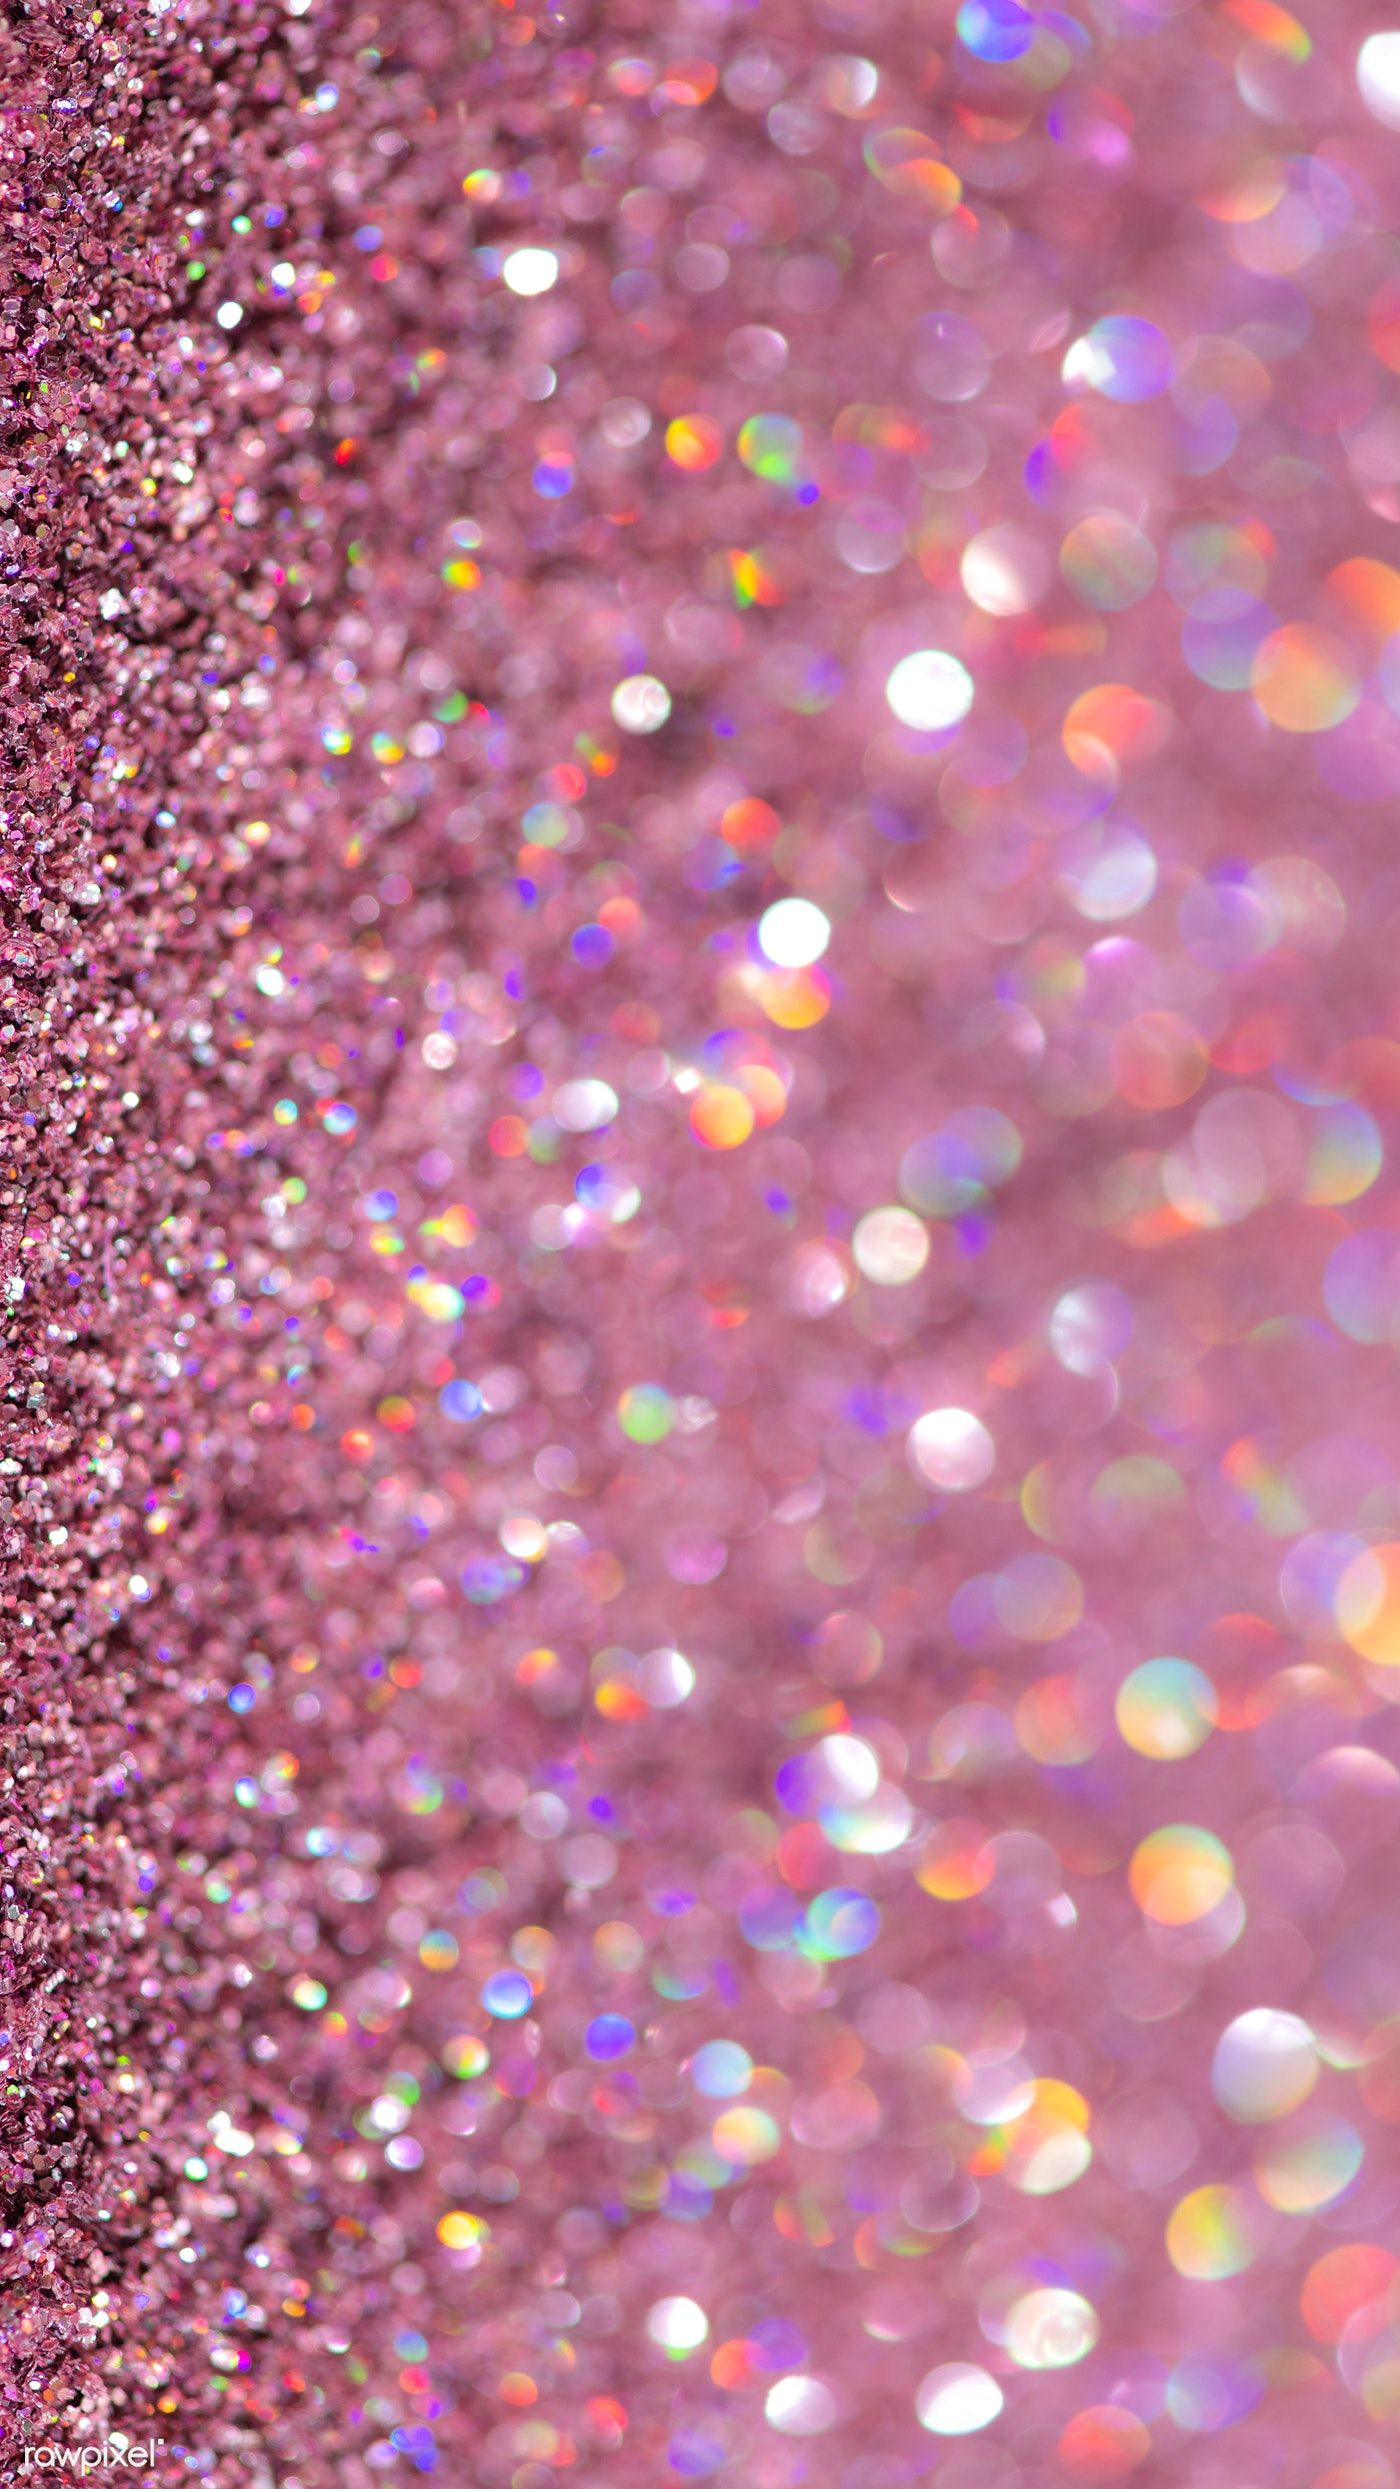 Shiny Pink Glitter Textured Background Free Image By Rawpixel Com Teddy Rawpixel Pink Sparkle Background Pink Glitter Wallpaper Pink Glitter Background